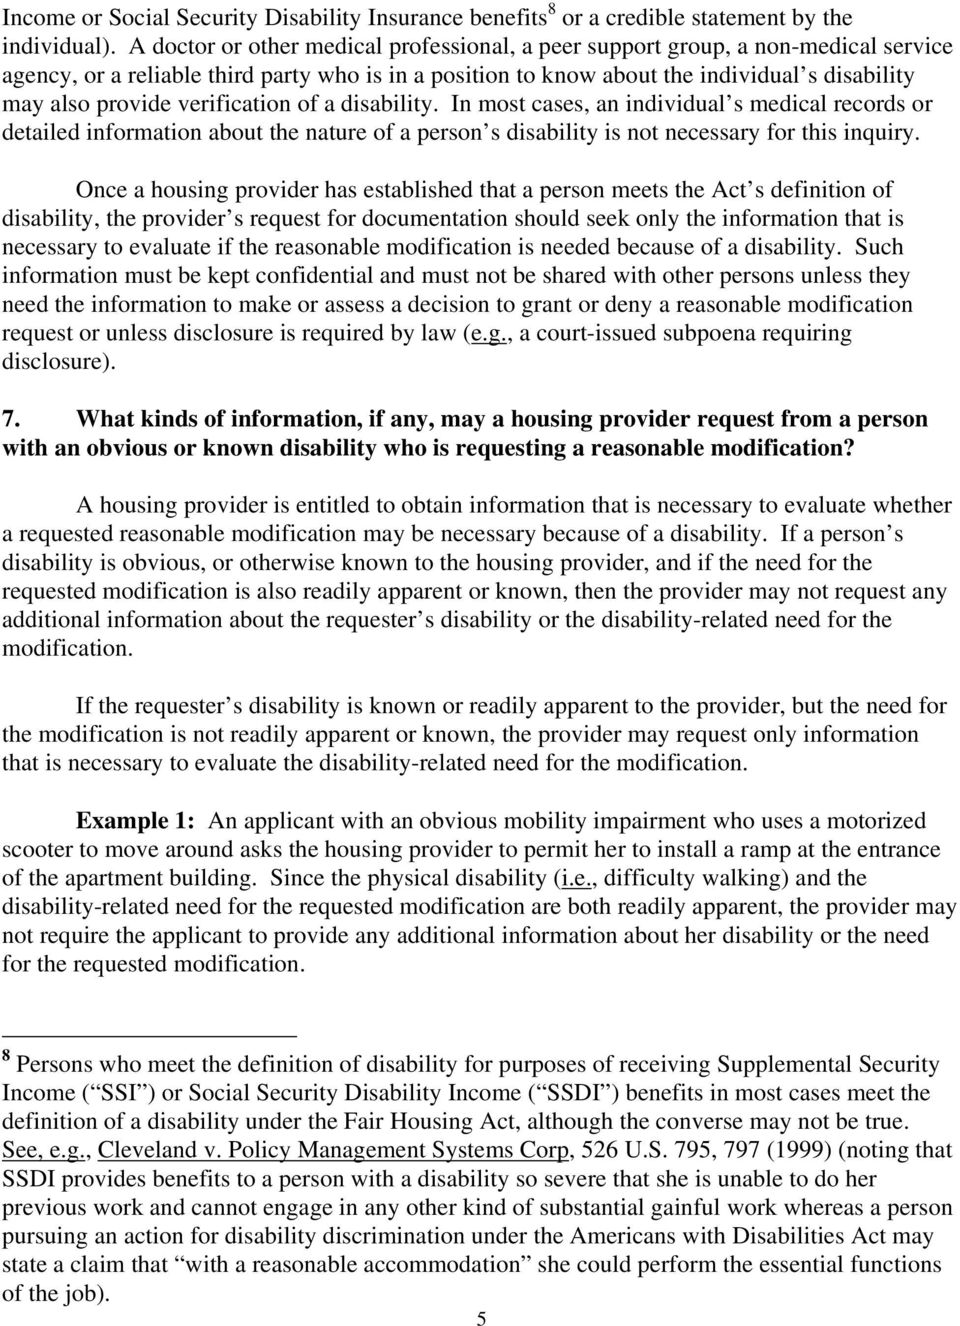 verification of a disability. In most cases, an individual s medical records or detailed information about the nature of a person s disability is not necessary for this inquiry.